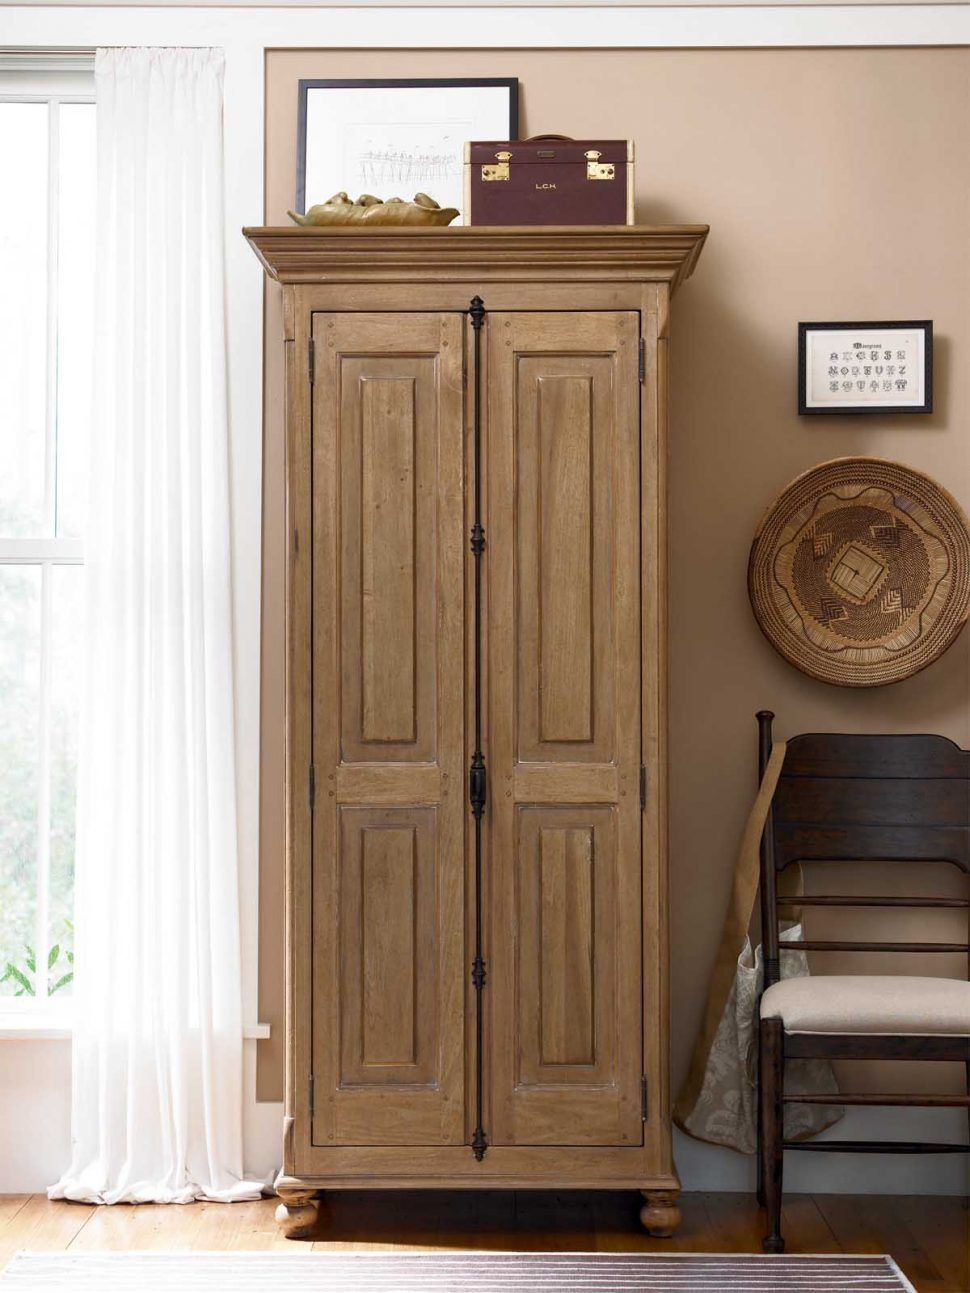 Interior 12 Inch Pantry Cabinet kitchen cabinet 24 inch wide pantry 14 oak storage free standing bar 12